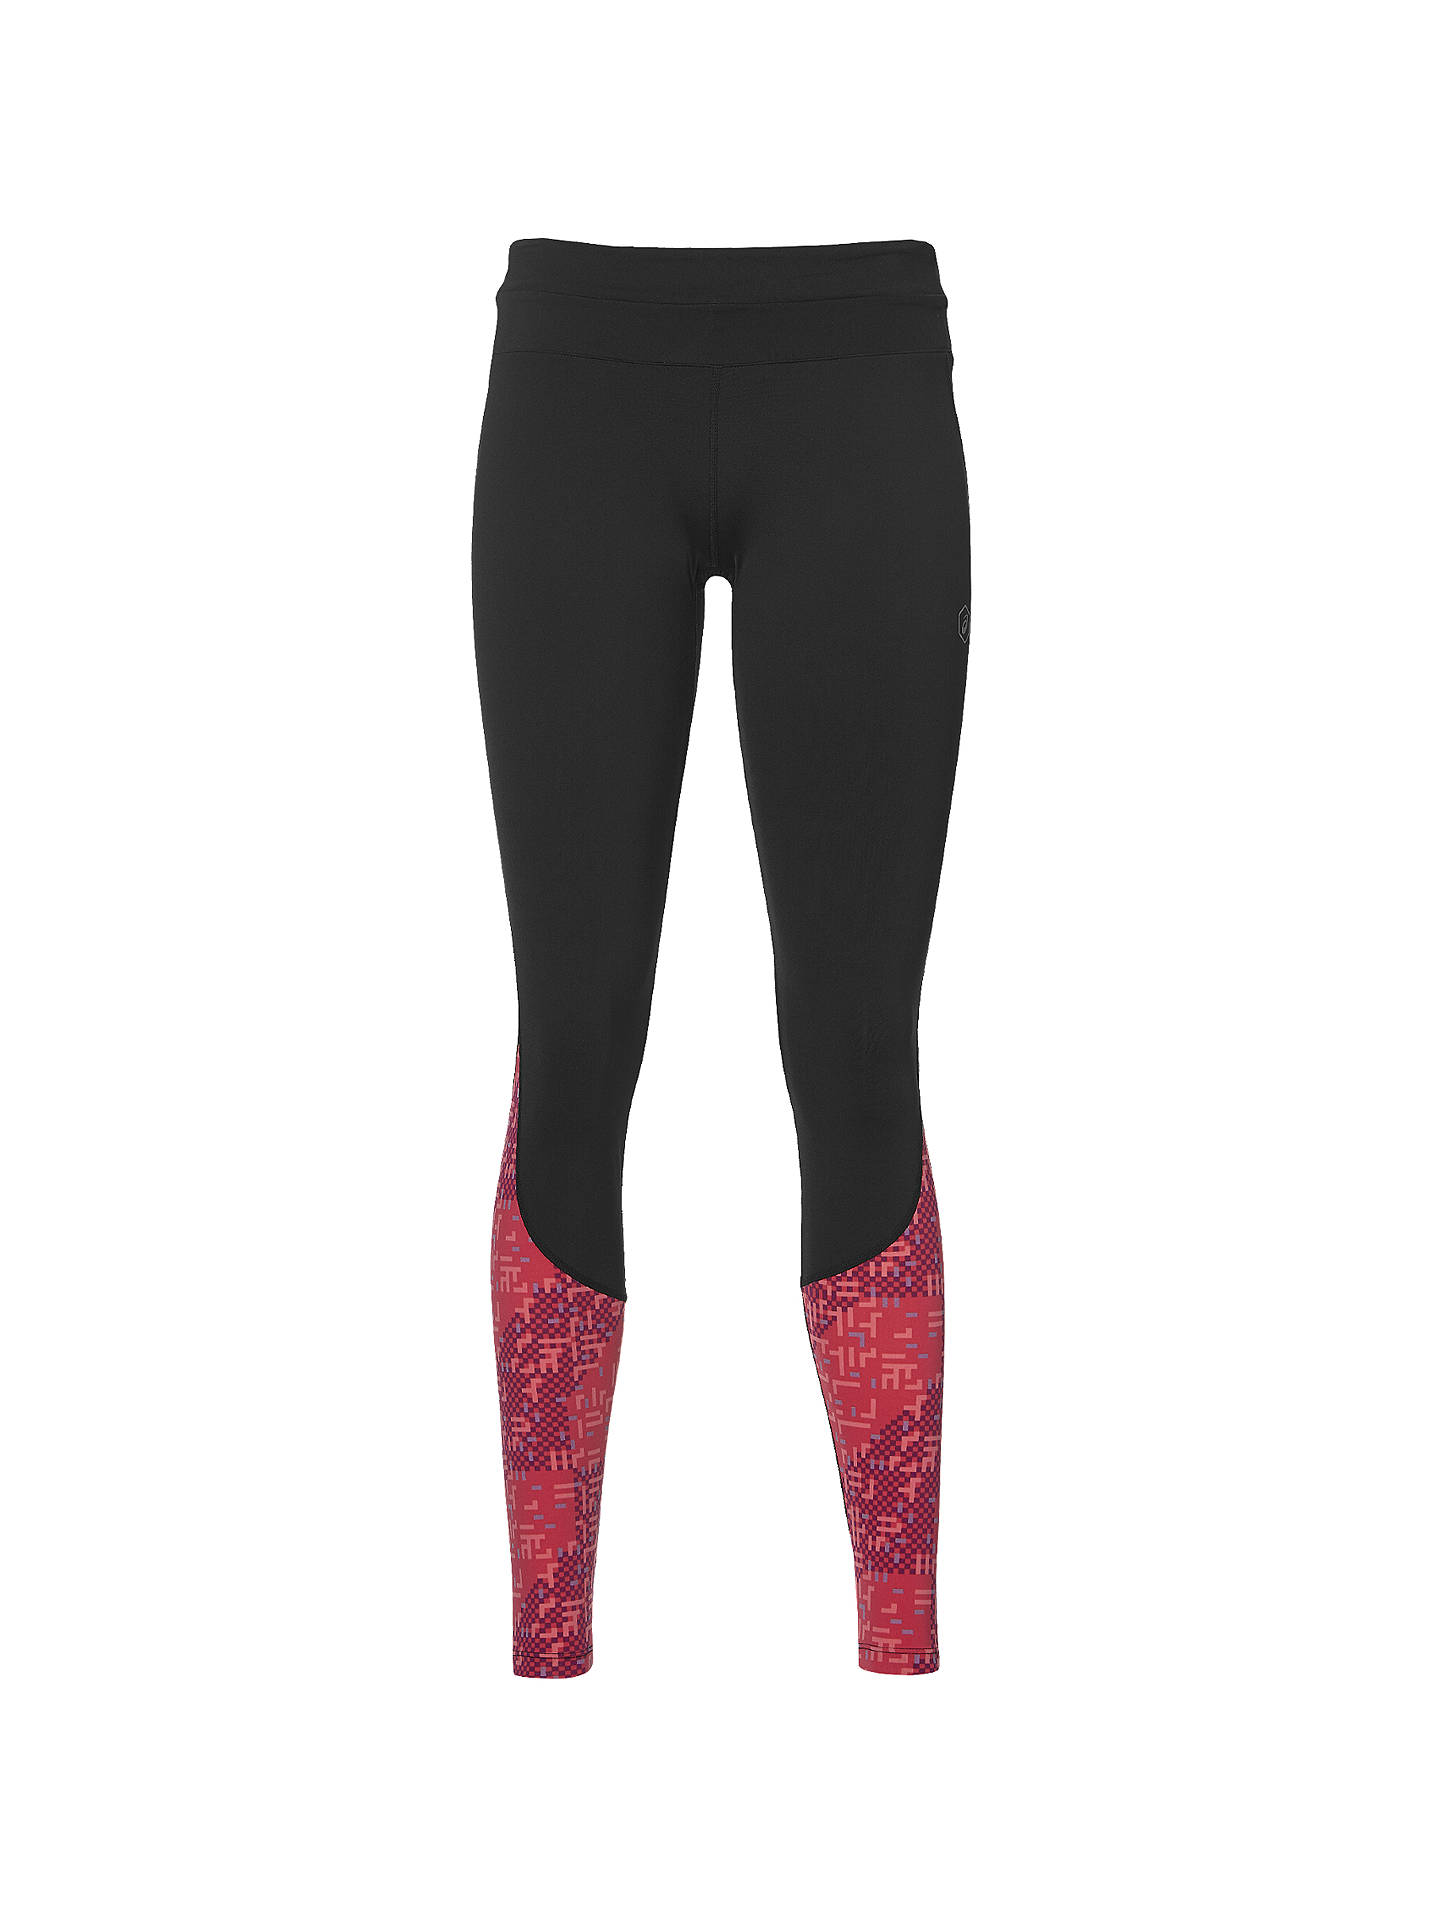 75287191 Asics Race Running Tights, Black/Red at John Lewis & Partners